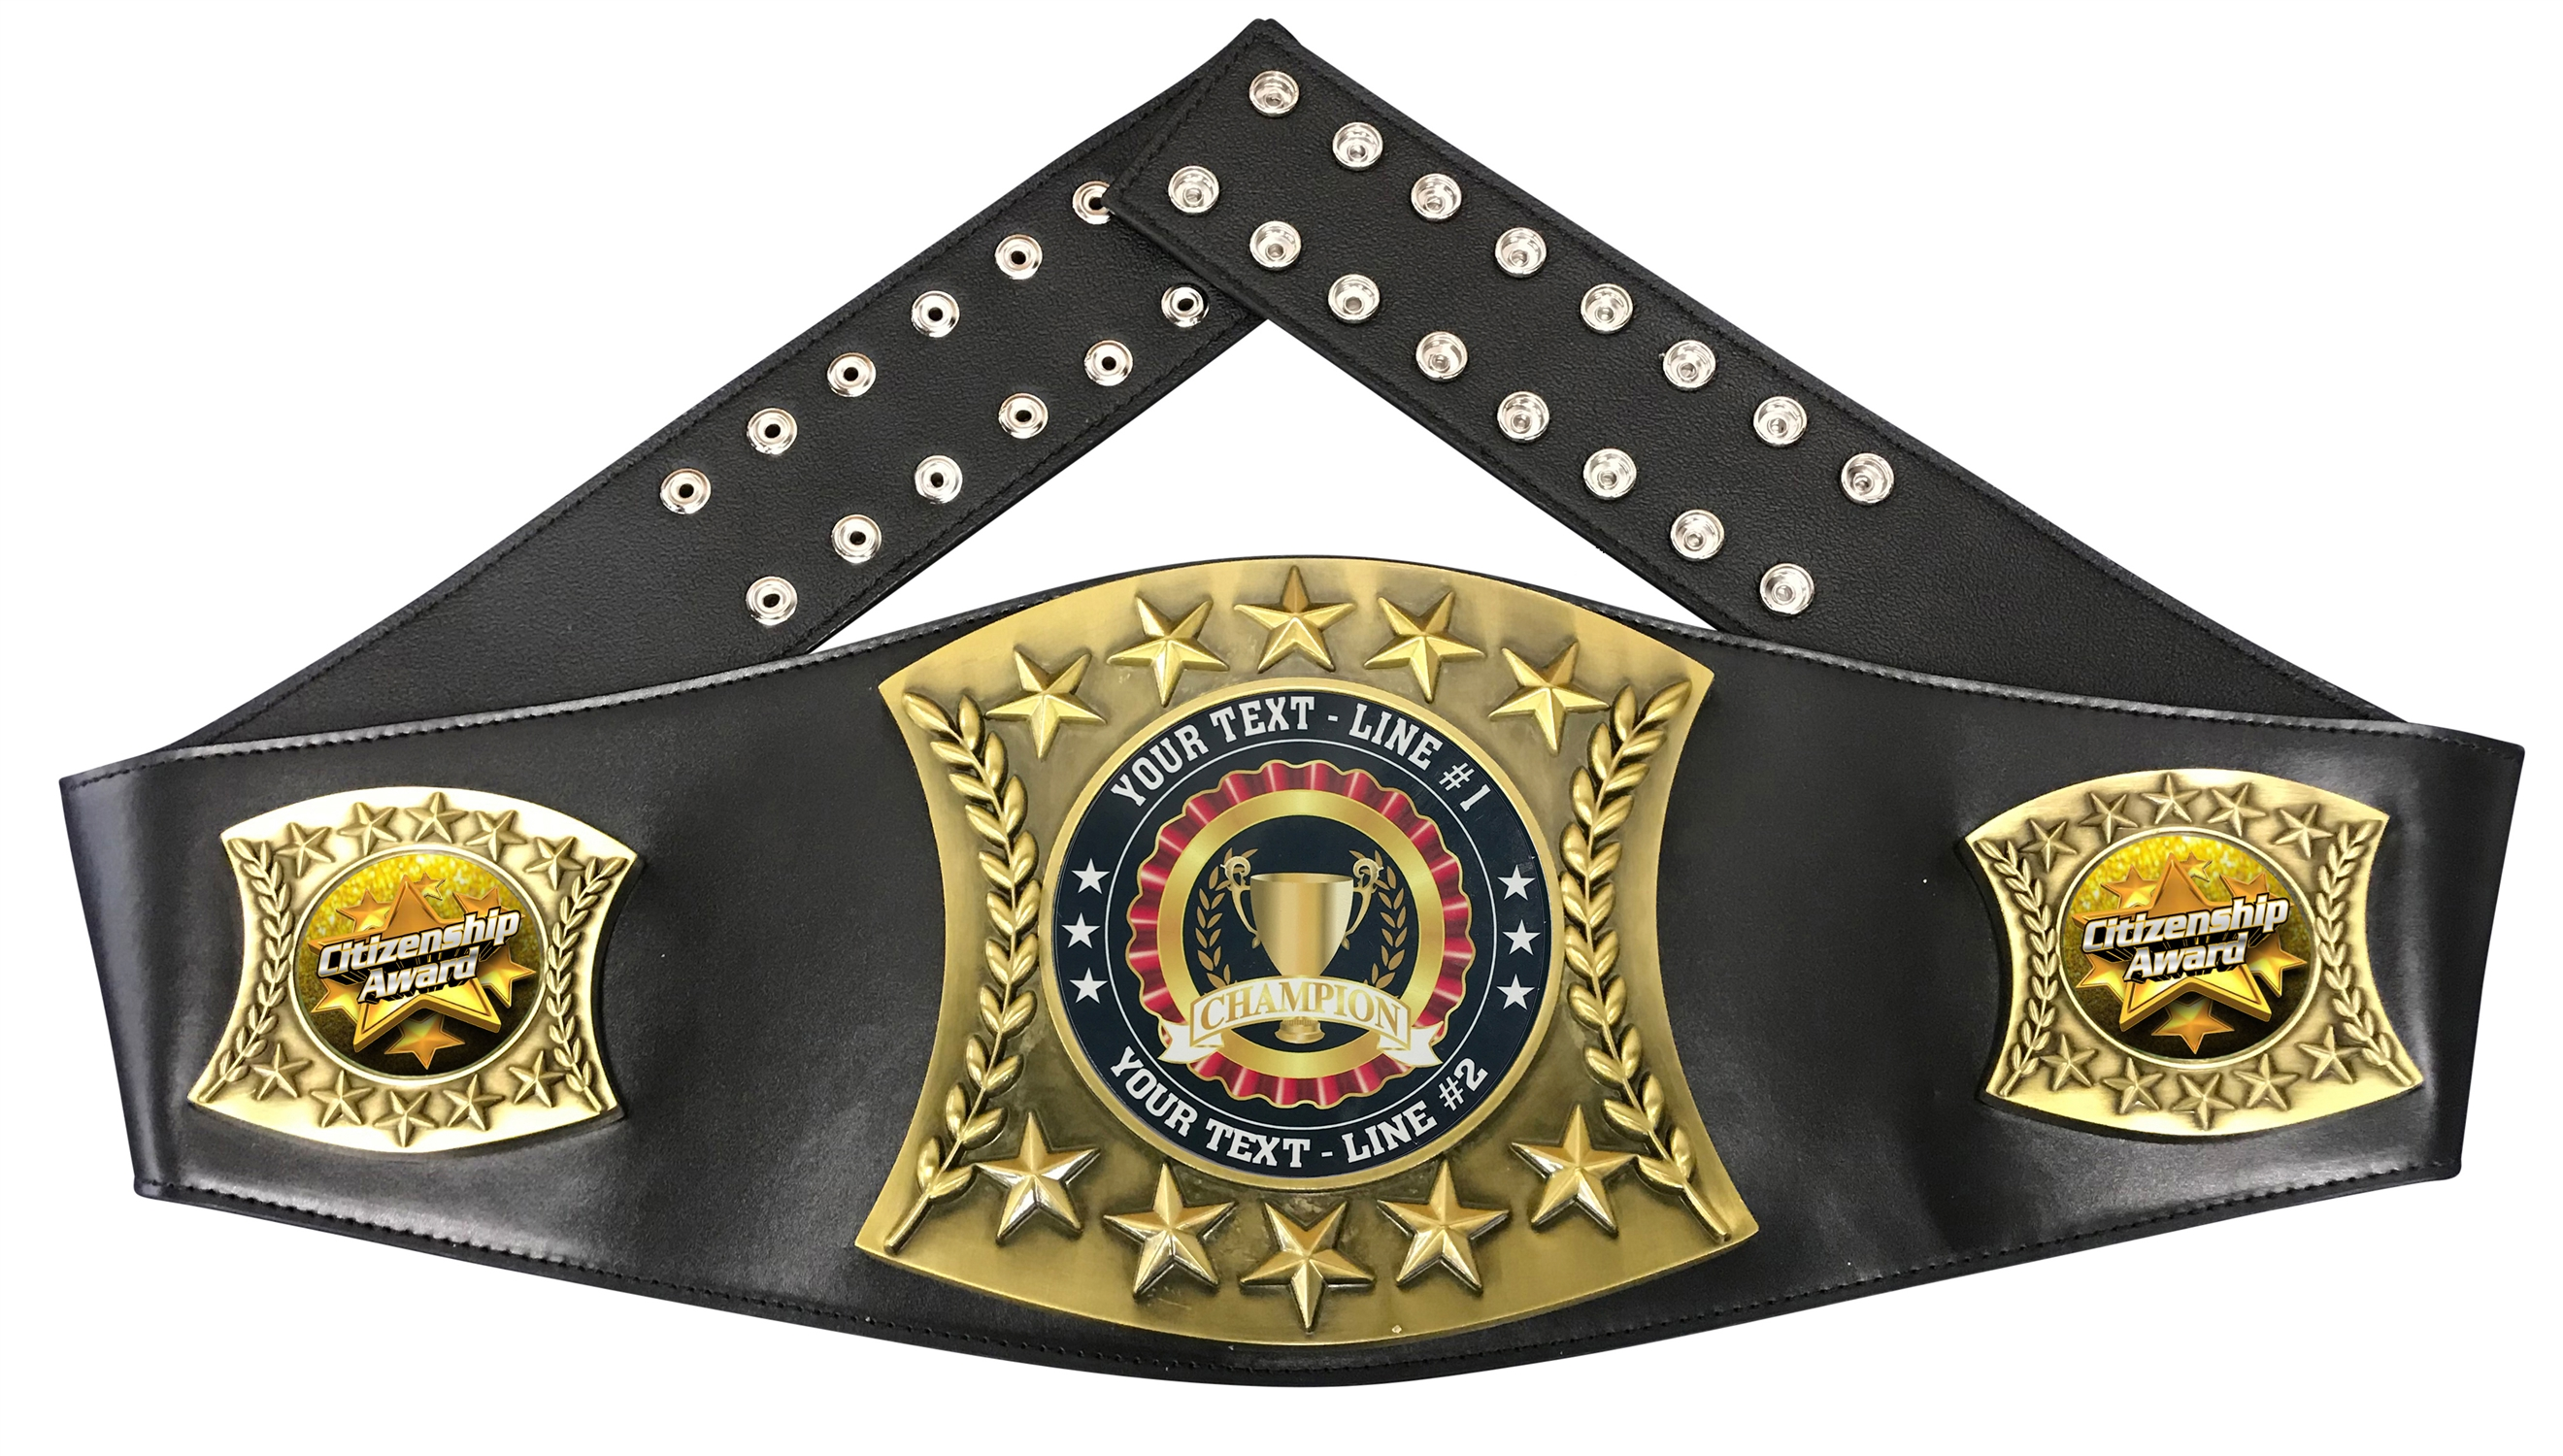 Citizenship Personalized Championship Belt